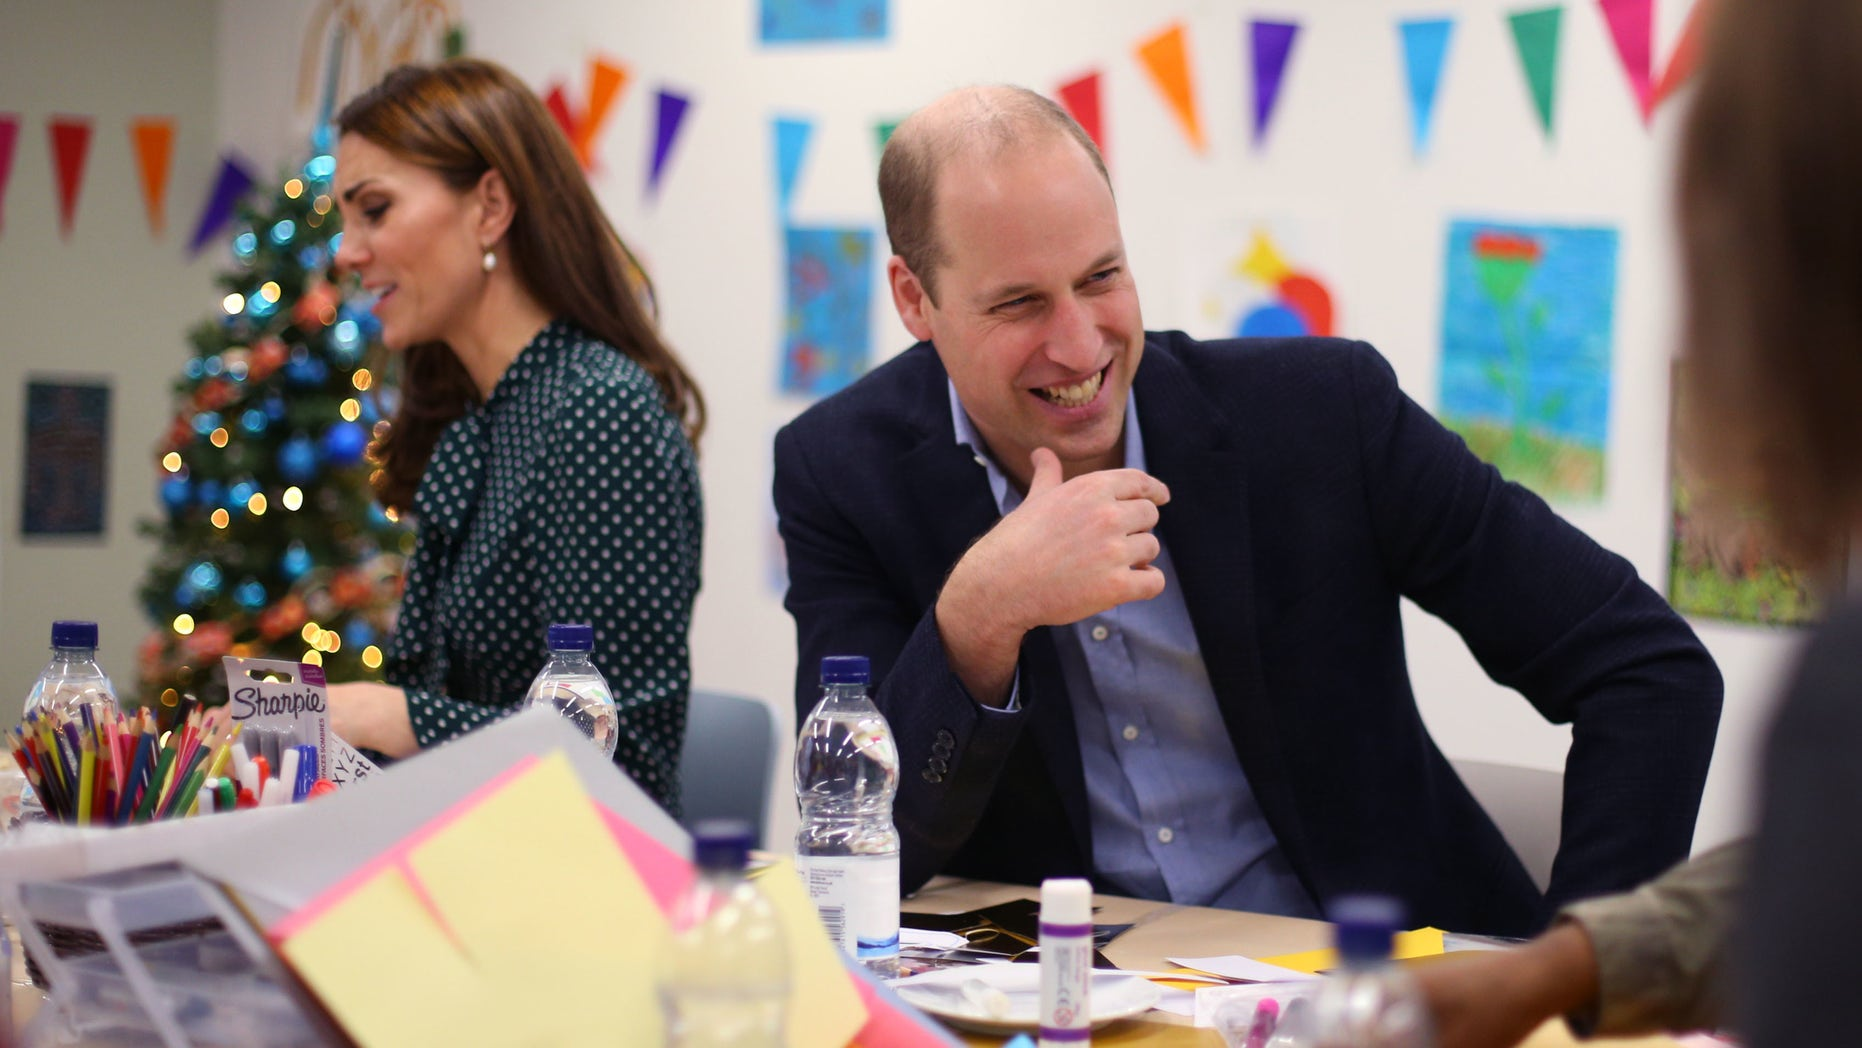 Catherine, Duchess of Cambridge and Prince William, Duke of Cambridge take part in an arts and craft session with clients during their visit to the homeless charity The Passage on December 11, 2018 in London, England.